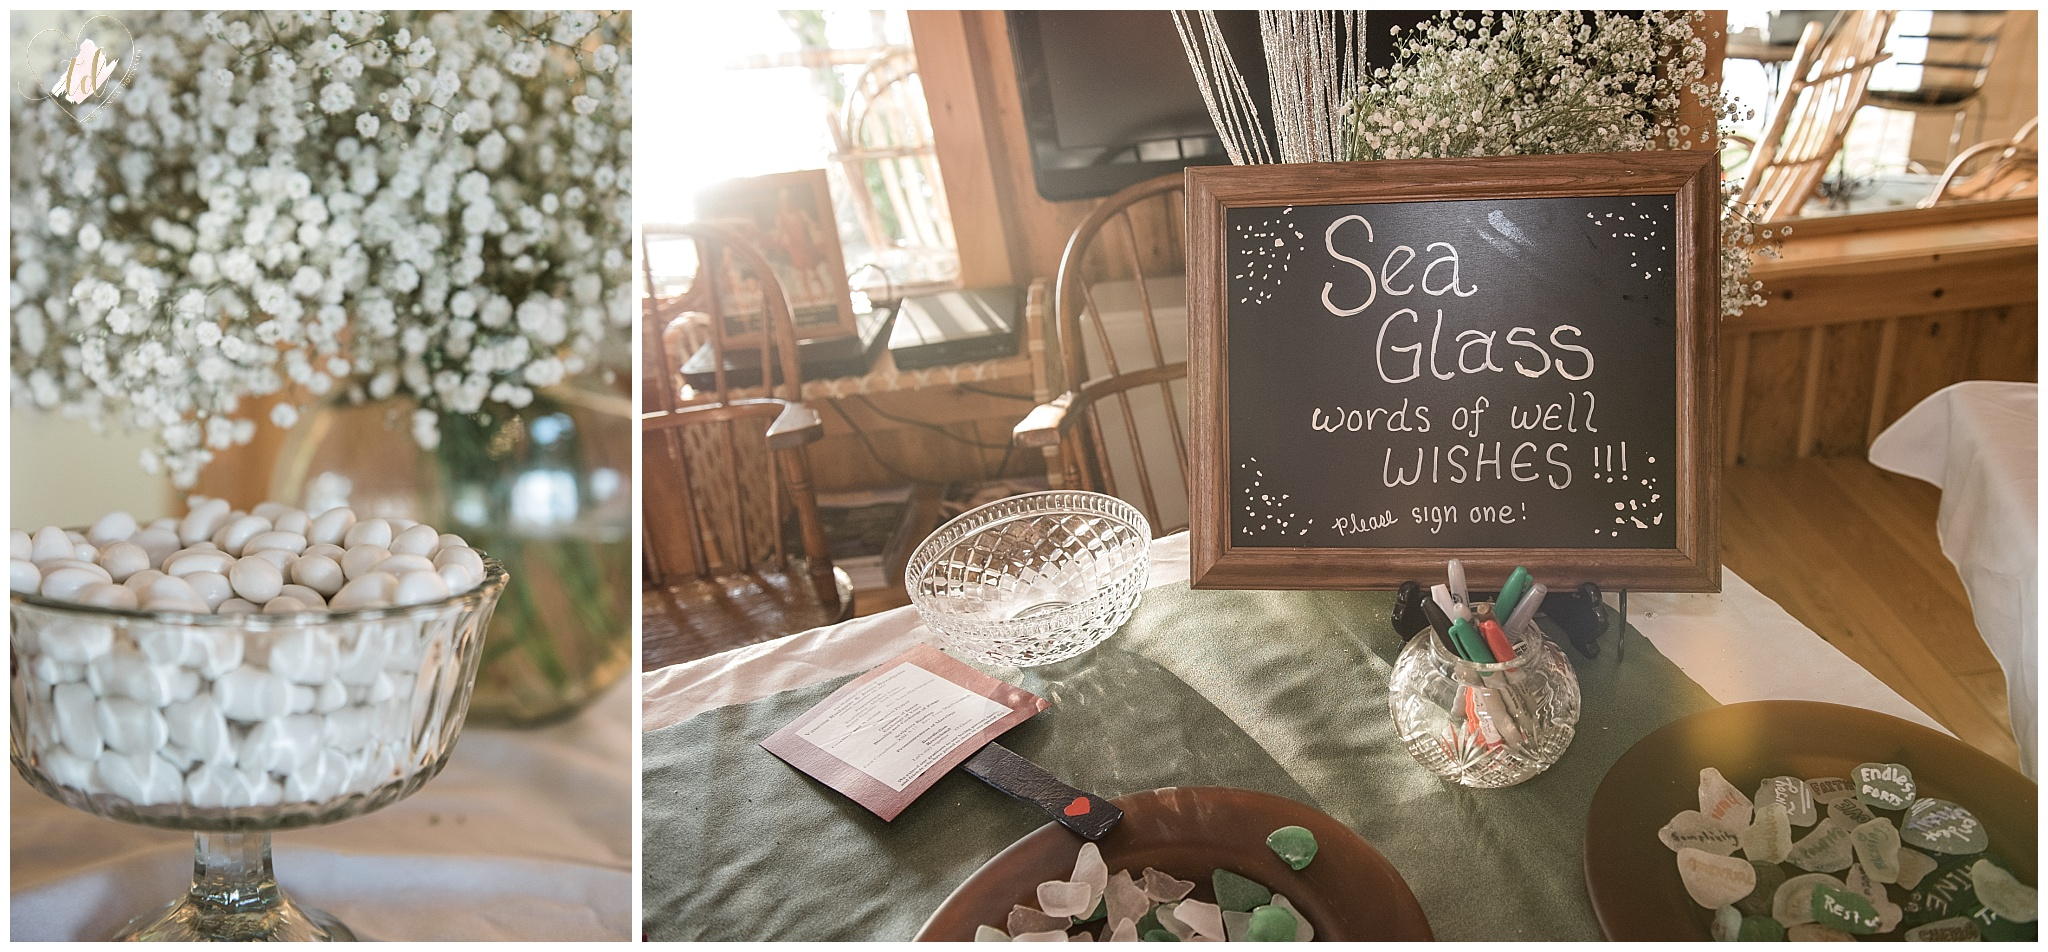 Rustic Maine wedding details sign sea glass.